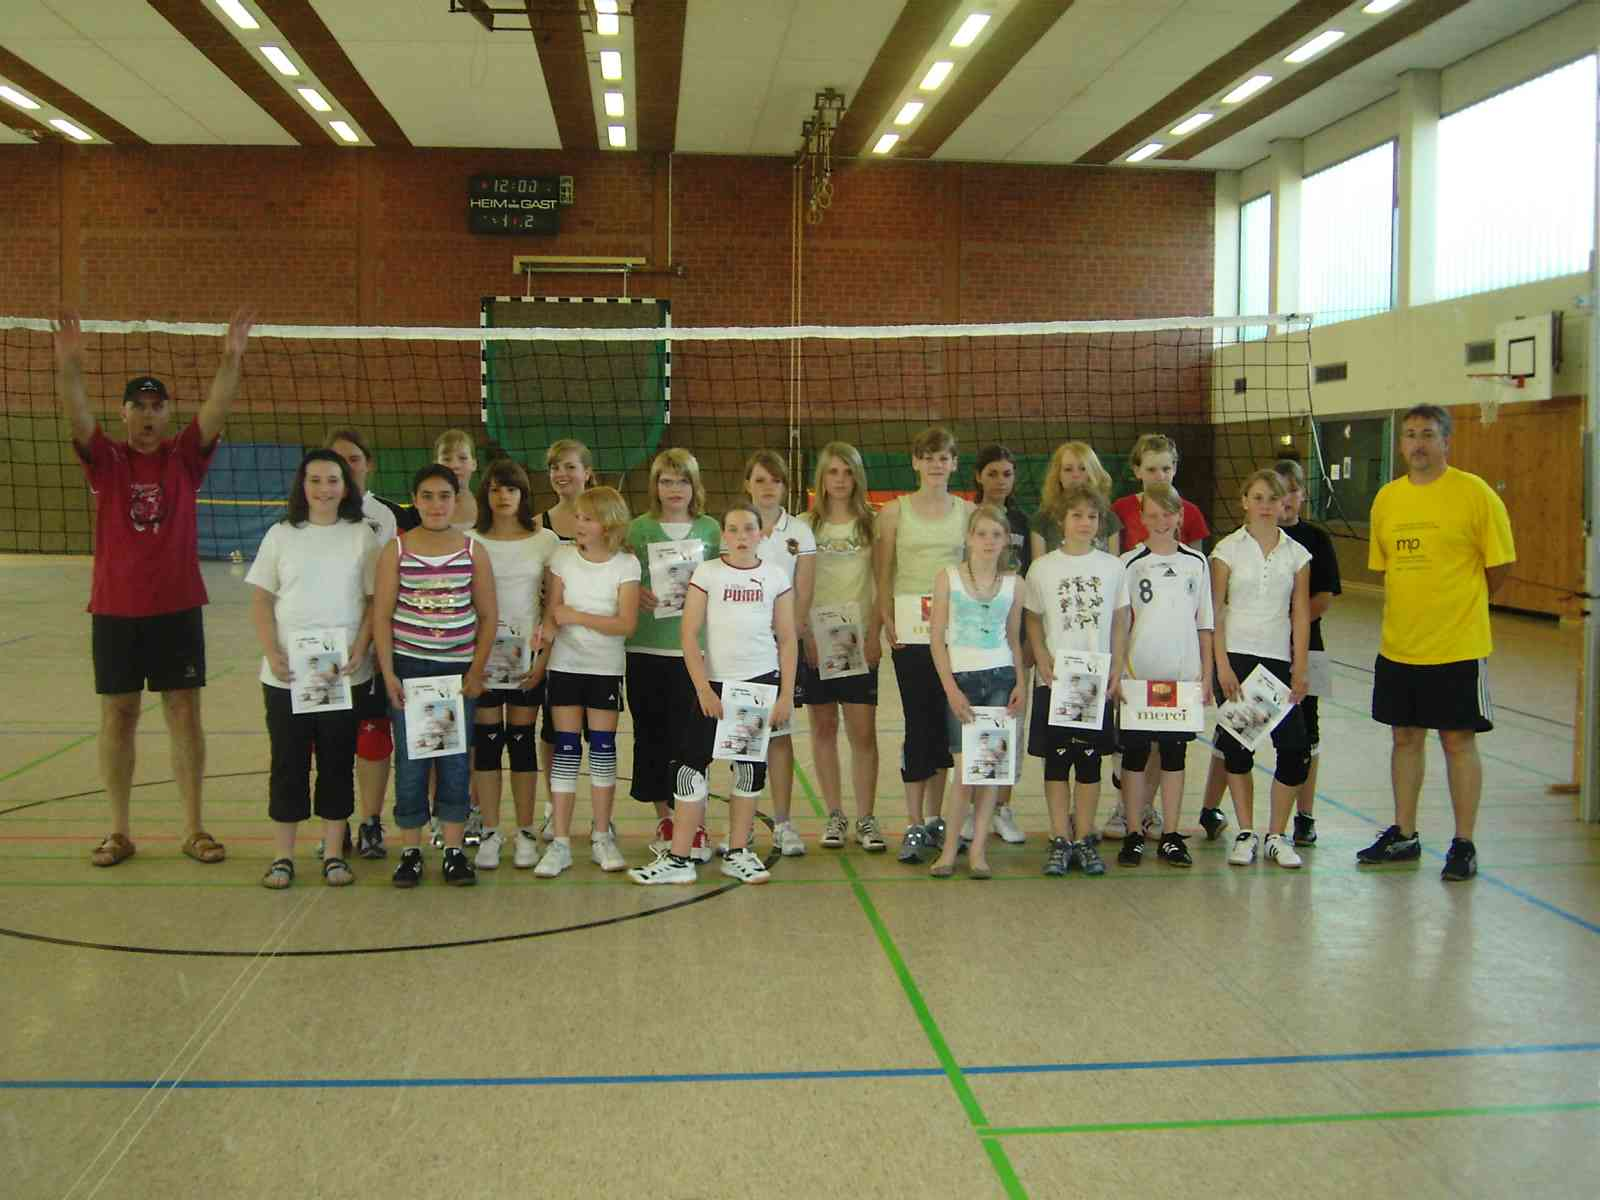 Volleyball-Maedels Anfaenger 2010